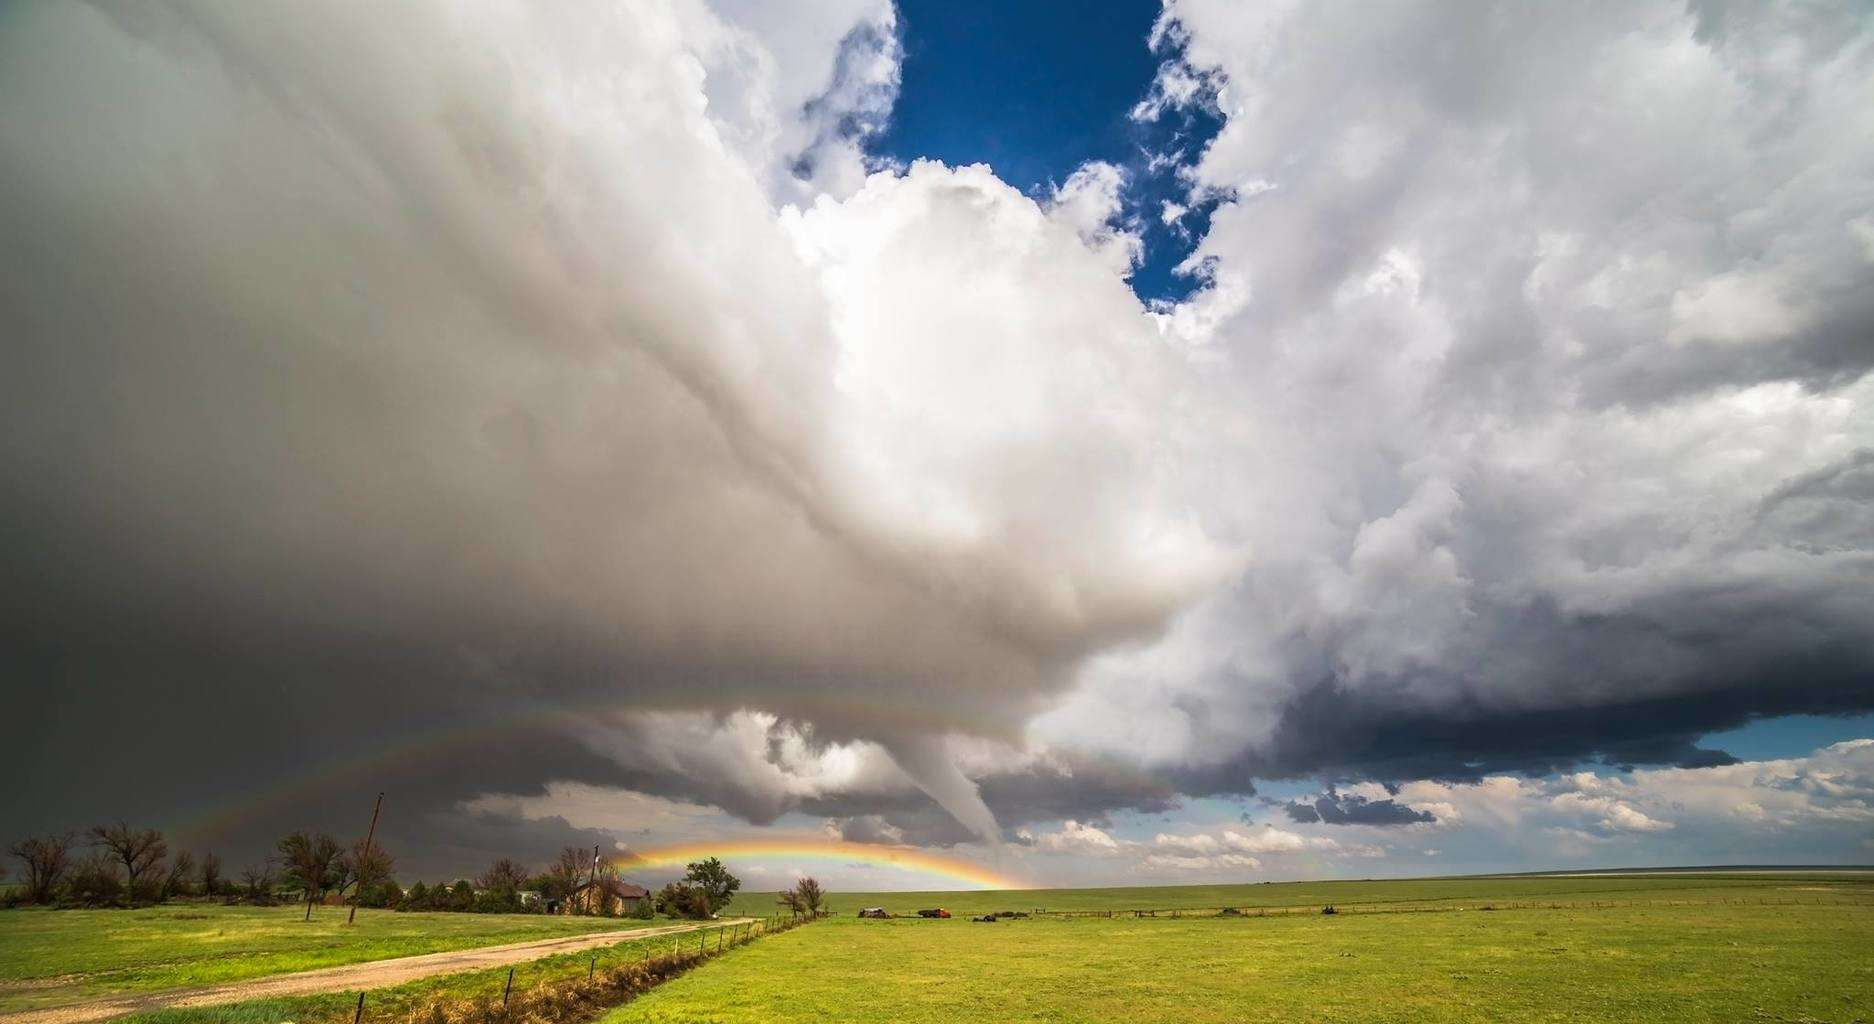 Difficult to write a description for this moment- Word's just don't seem to do this tornado and the scenery justice.  My view of the double rainbow framed front-lit tornado near Eads Colorado 5-9-2015, the first this cyclic LP supercell would produce of a handful. This is one of the most amazing things that's ever happened to me, I wish one of these days to every storm chaser and weather enthusiast sometime in their lives.  It's taken quite a bit of willpower to hold off on posting this here haha, hopefully makes it that much sweeter